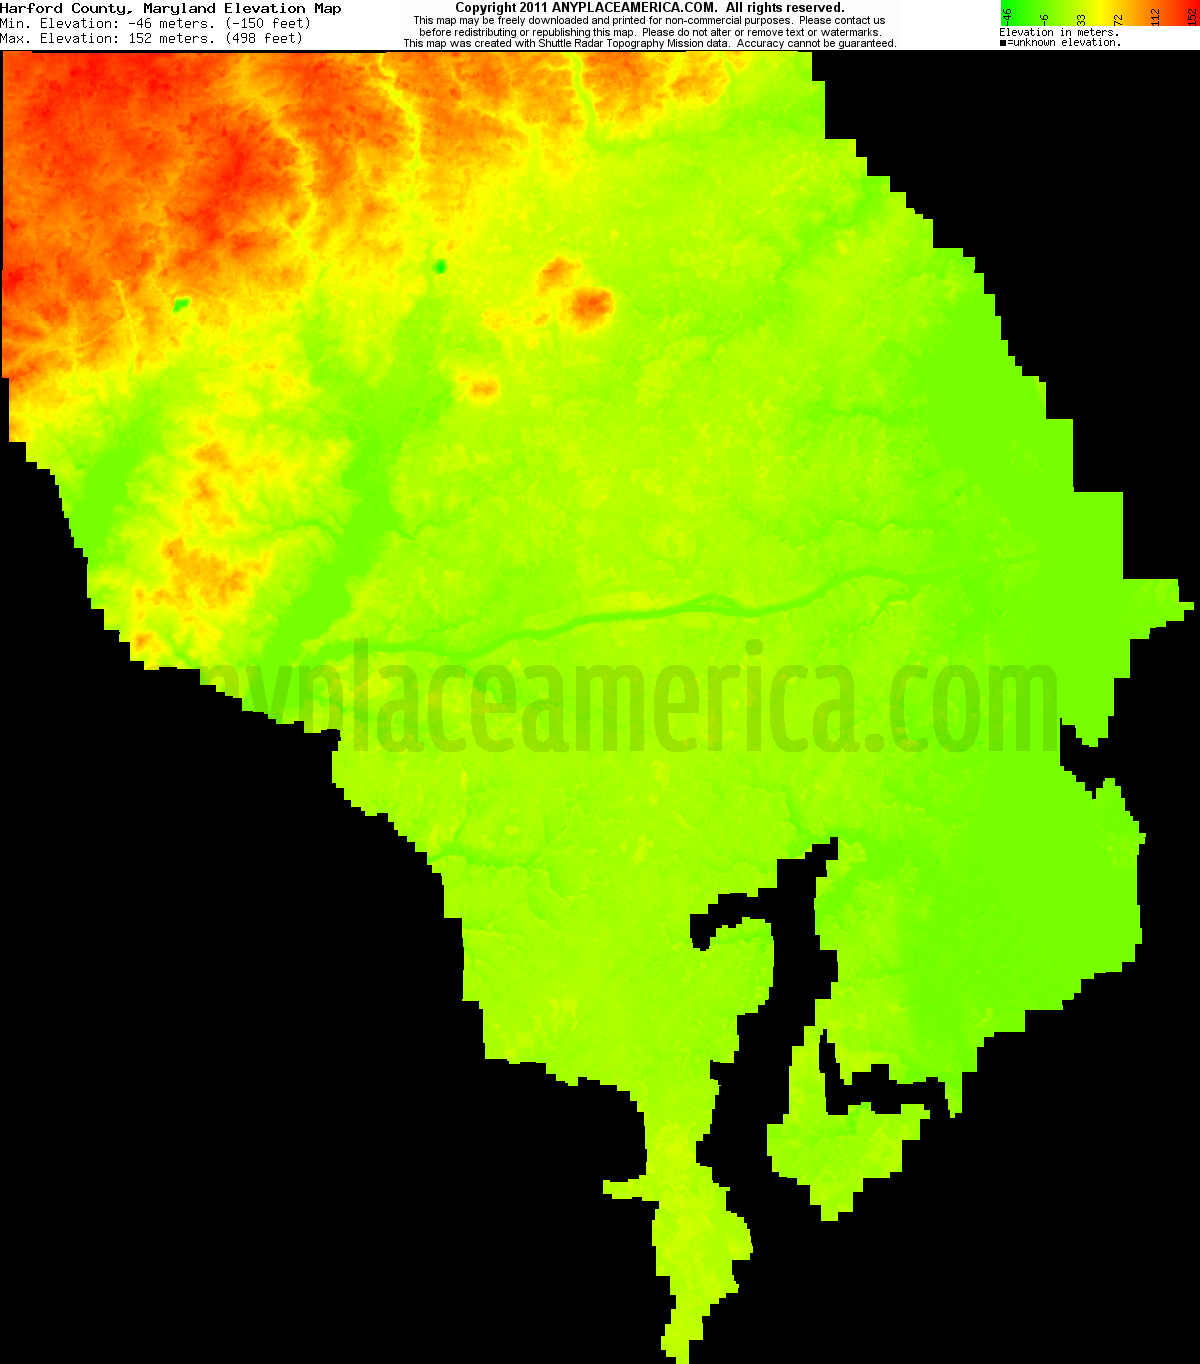 download harford county elevation map